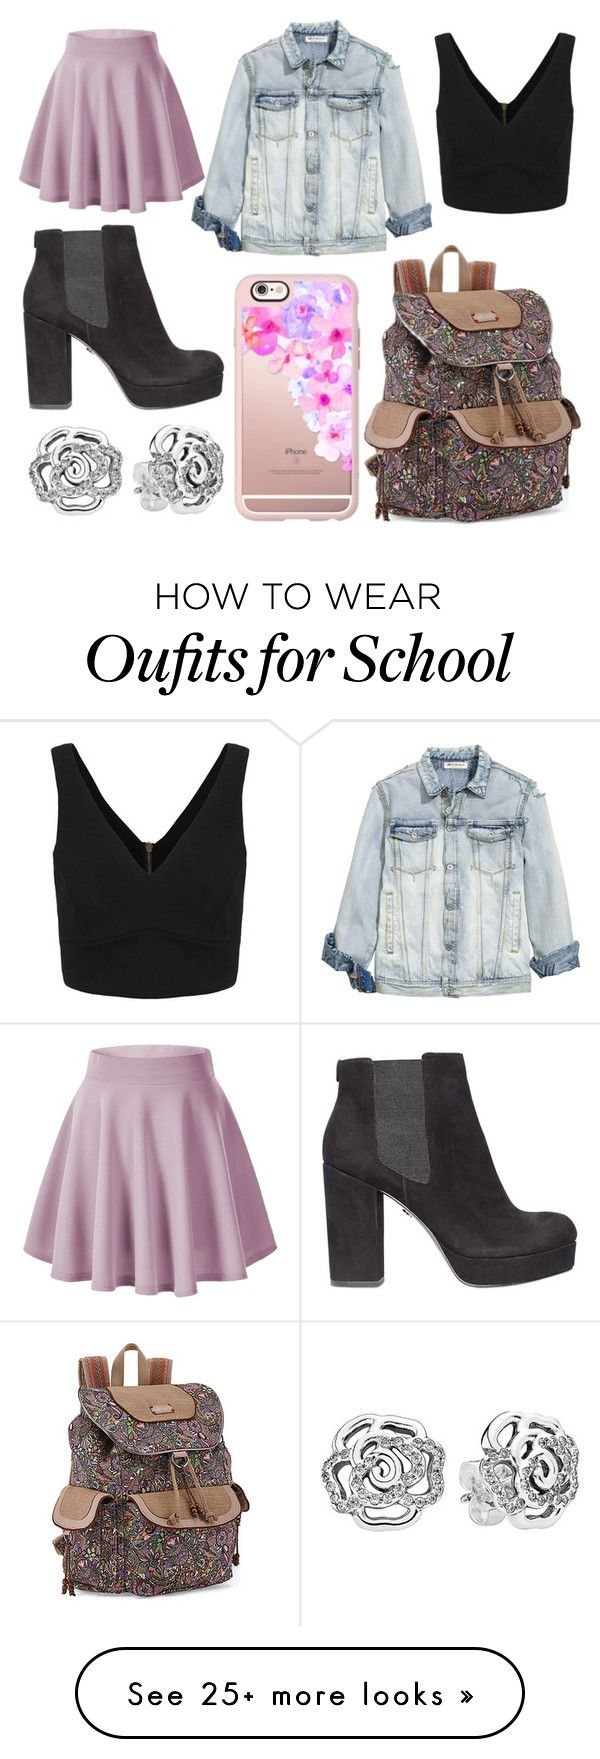 """""""School Day"""" by susanna-trad on Polyvore featuring KG Kurt Geiger, Sakroots, Casetify and Pandora"""